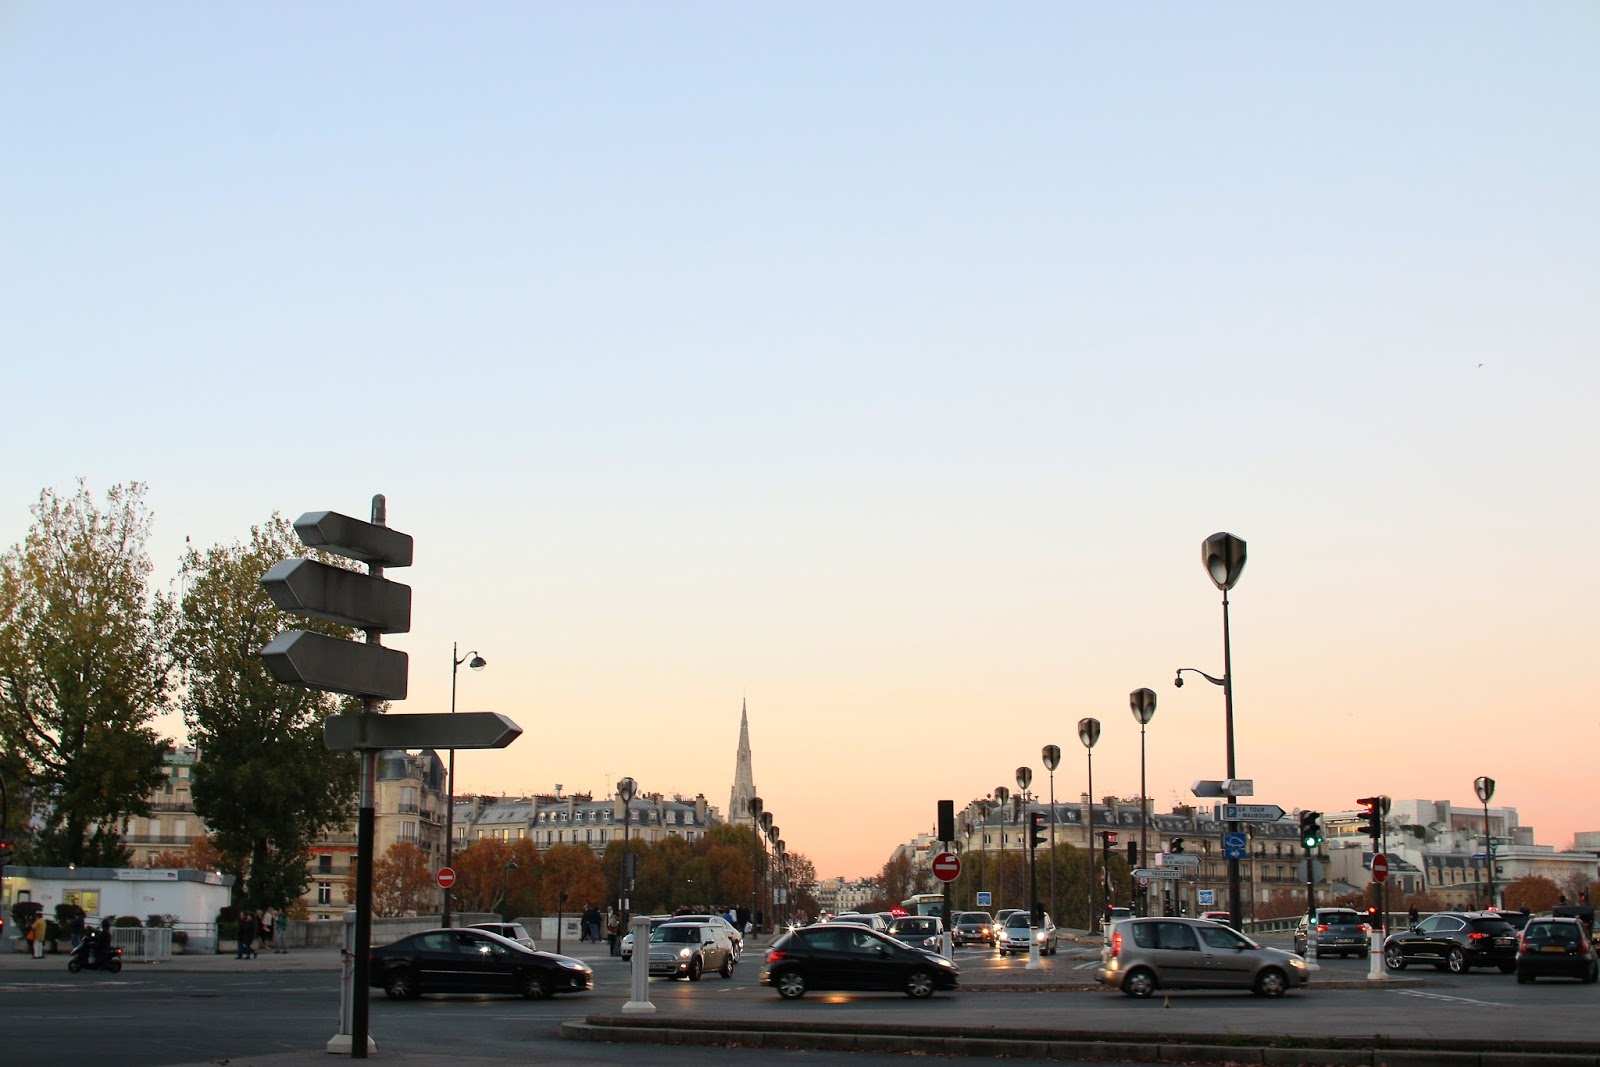 cars driving through a main road in paris during sunset